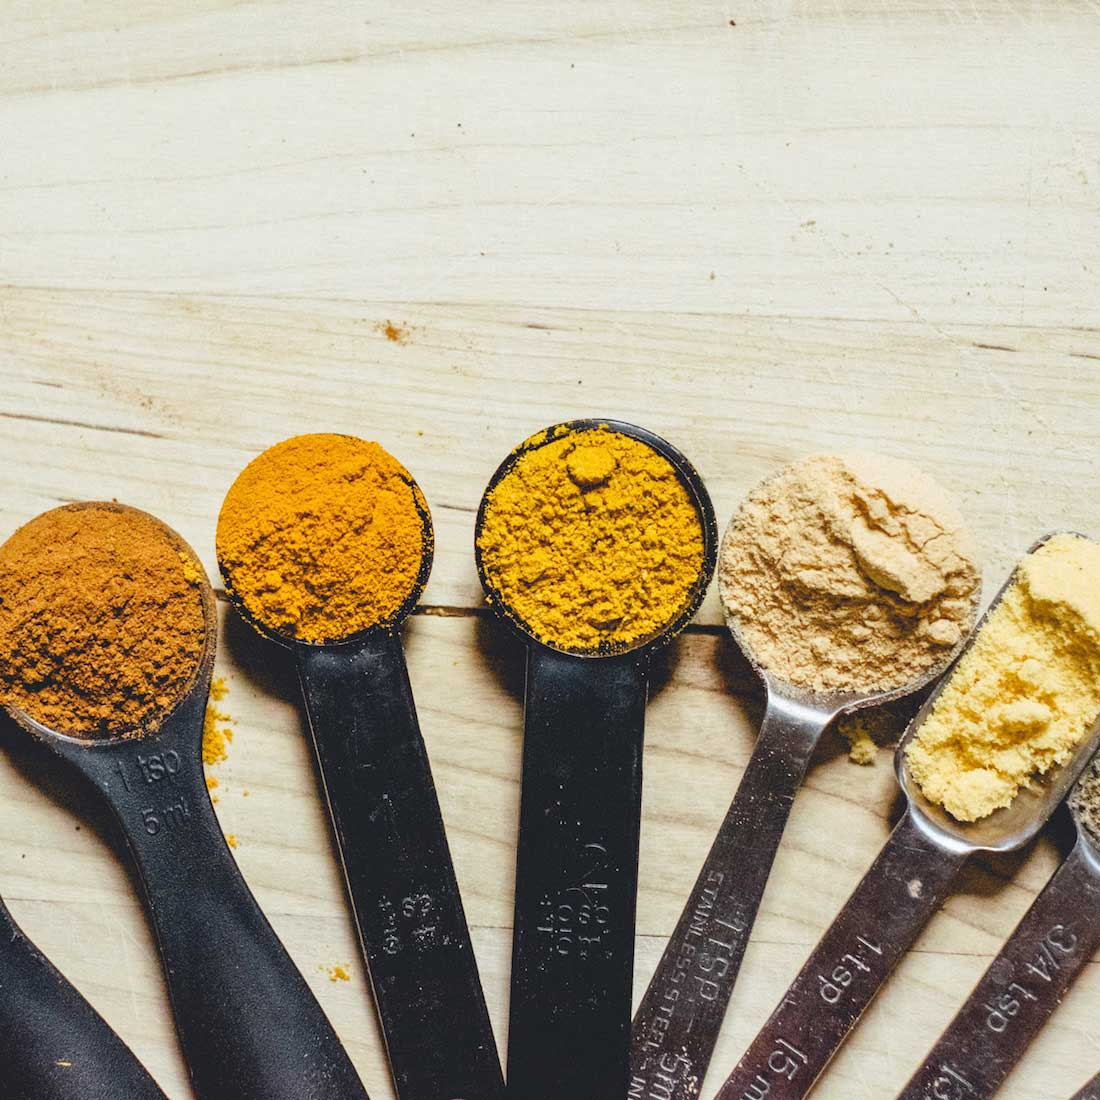 How to Use Turmeric as an Anti-Inflammatory